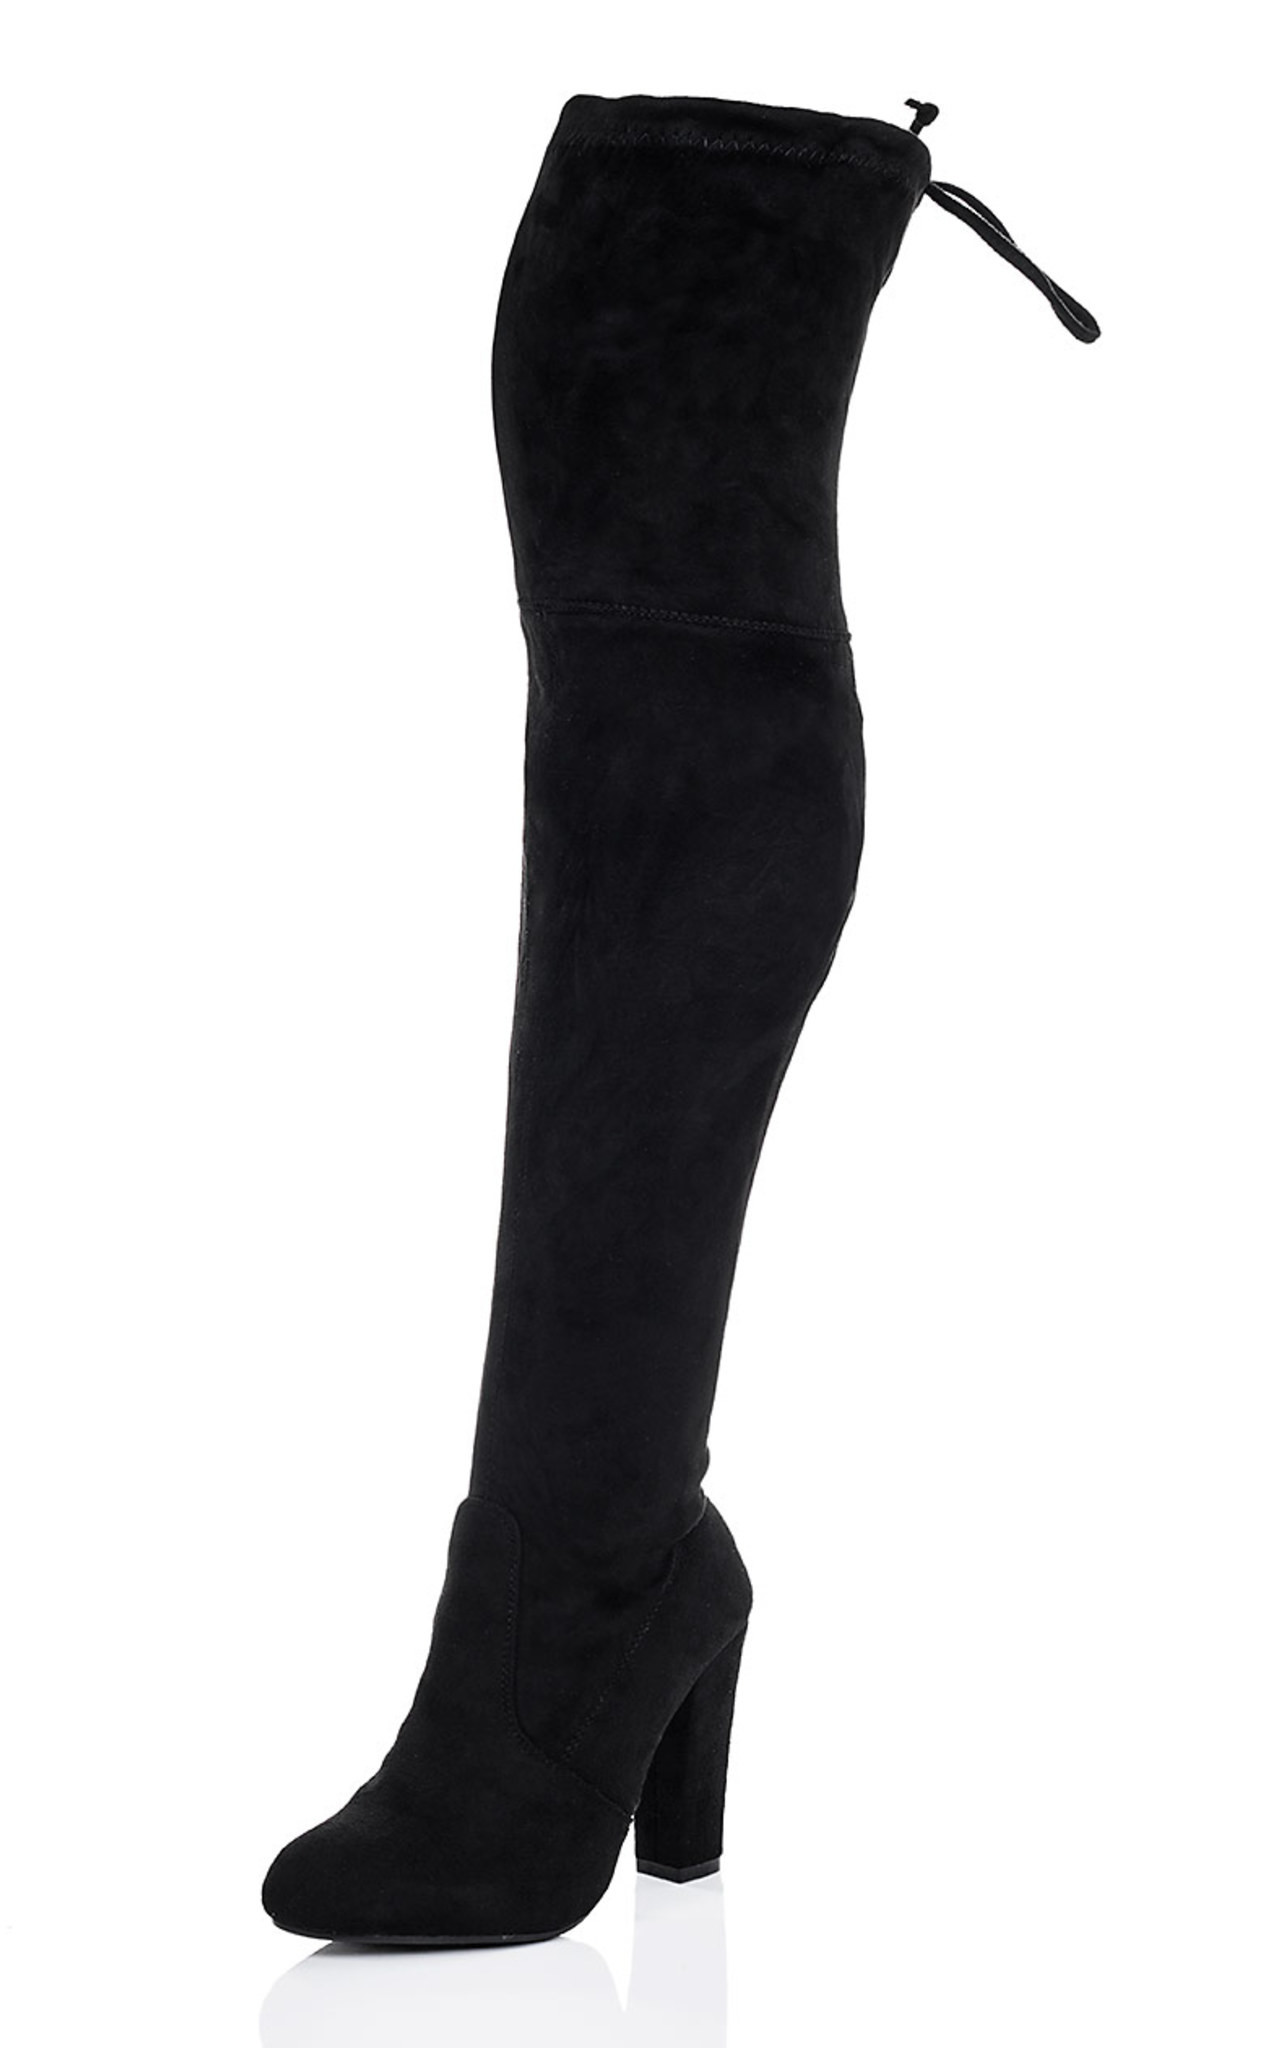 49c94d9aeac xlarge heeled-lace-up-over-knee-boots-spylovebuy-ze1-black-suede-1.jpg